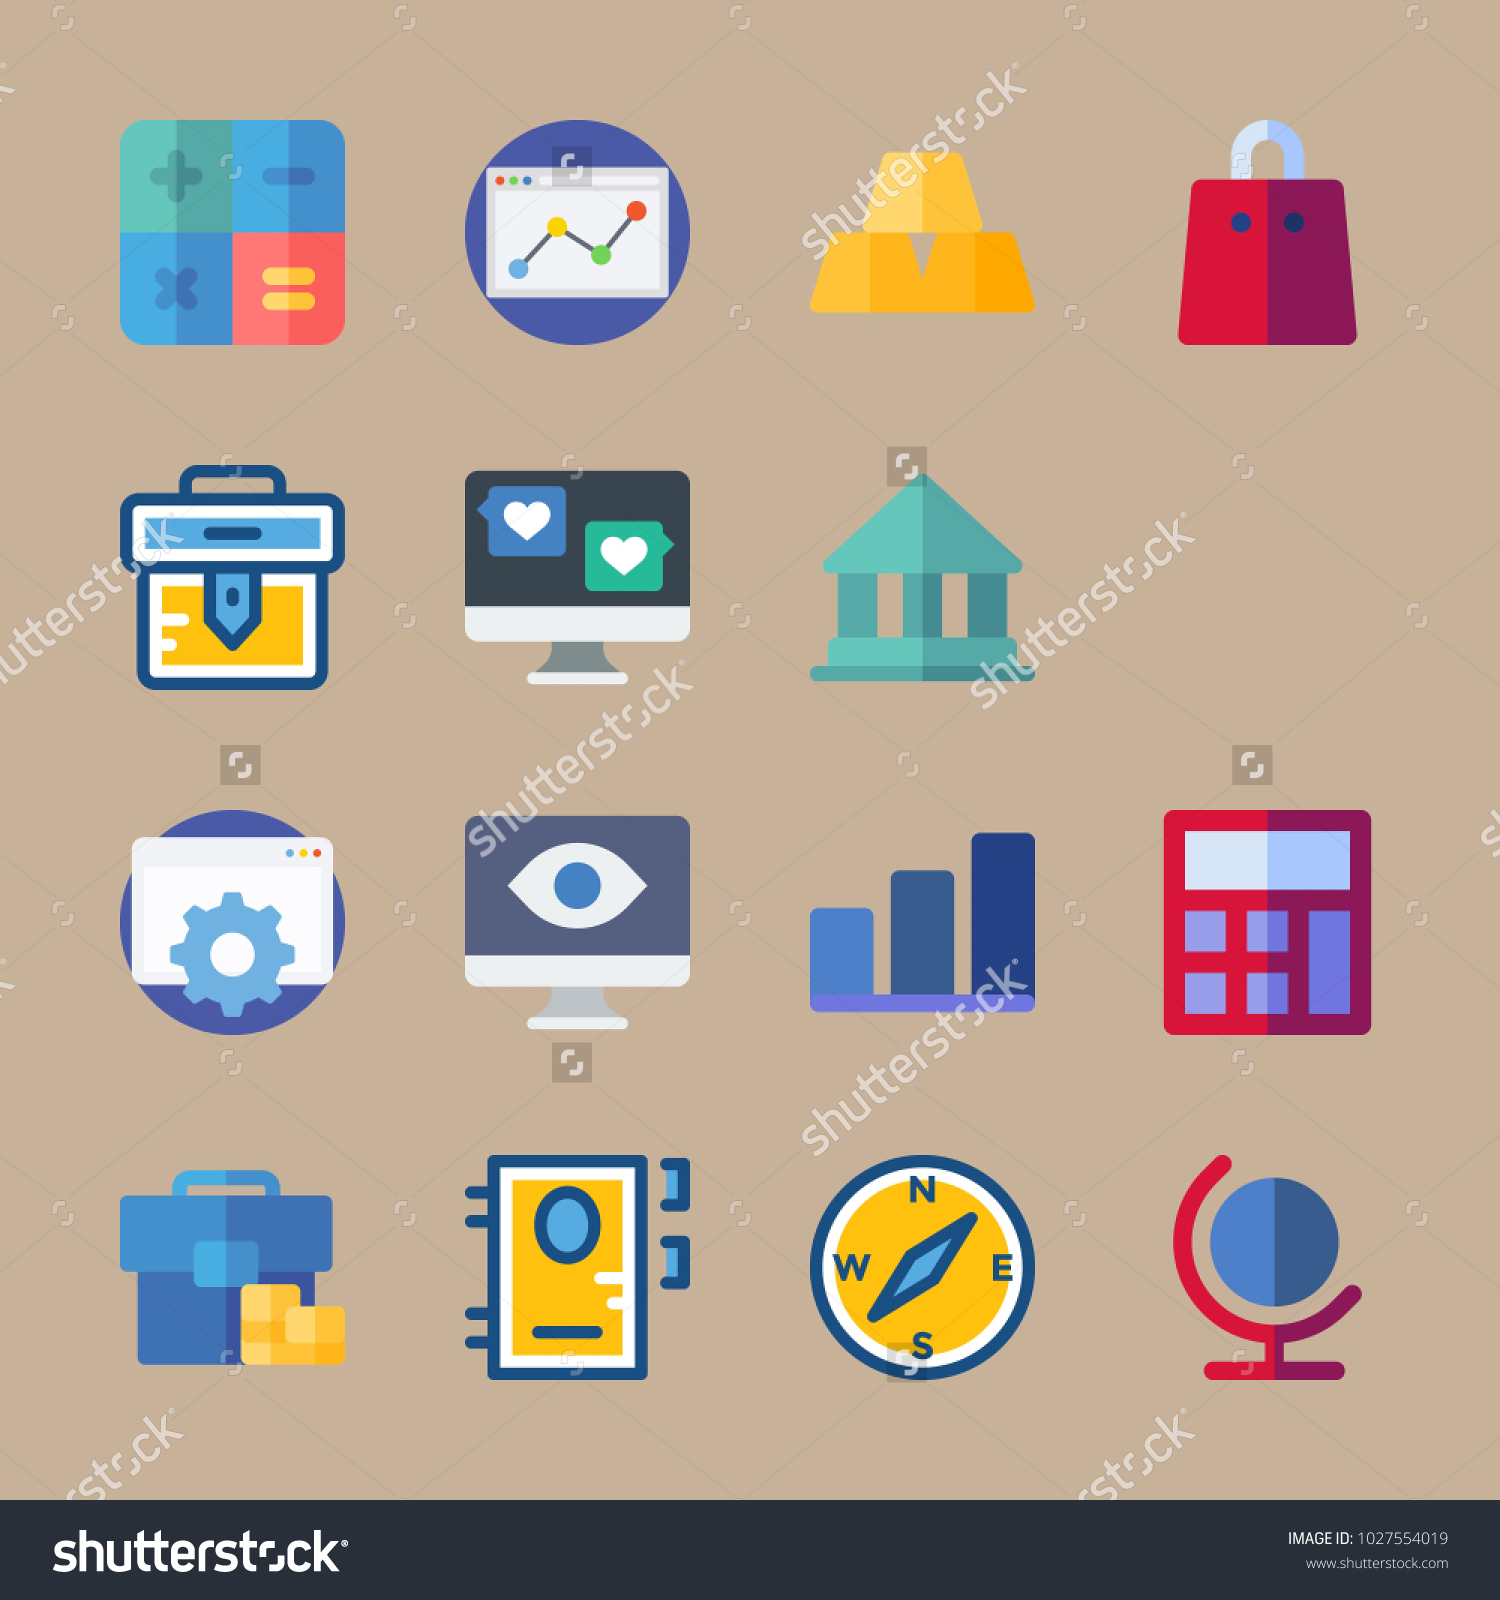 Icons business bar chart exchange calculator stock vector 1027554019 icons business with bar chart exchange calculator briefcase and compass ccuart Gallery